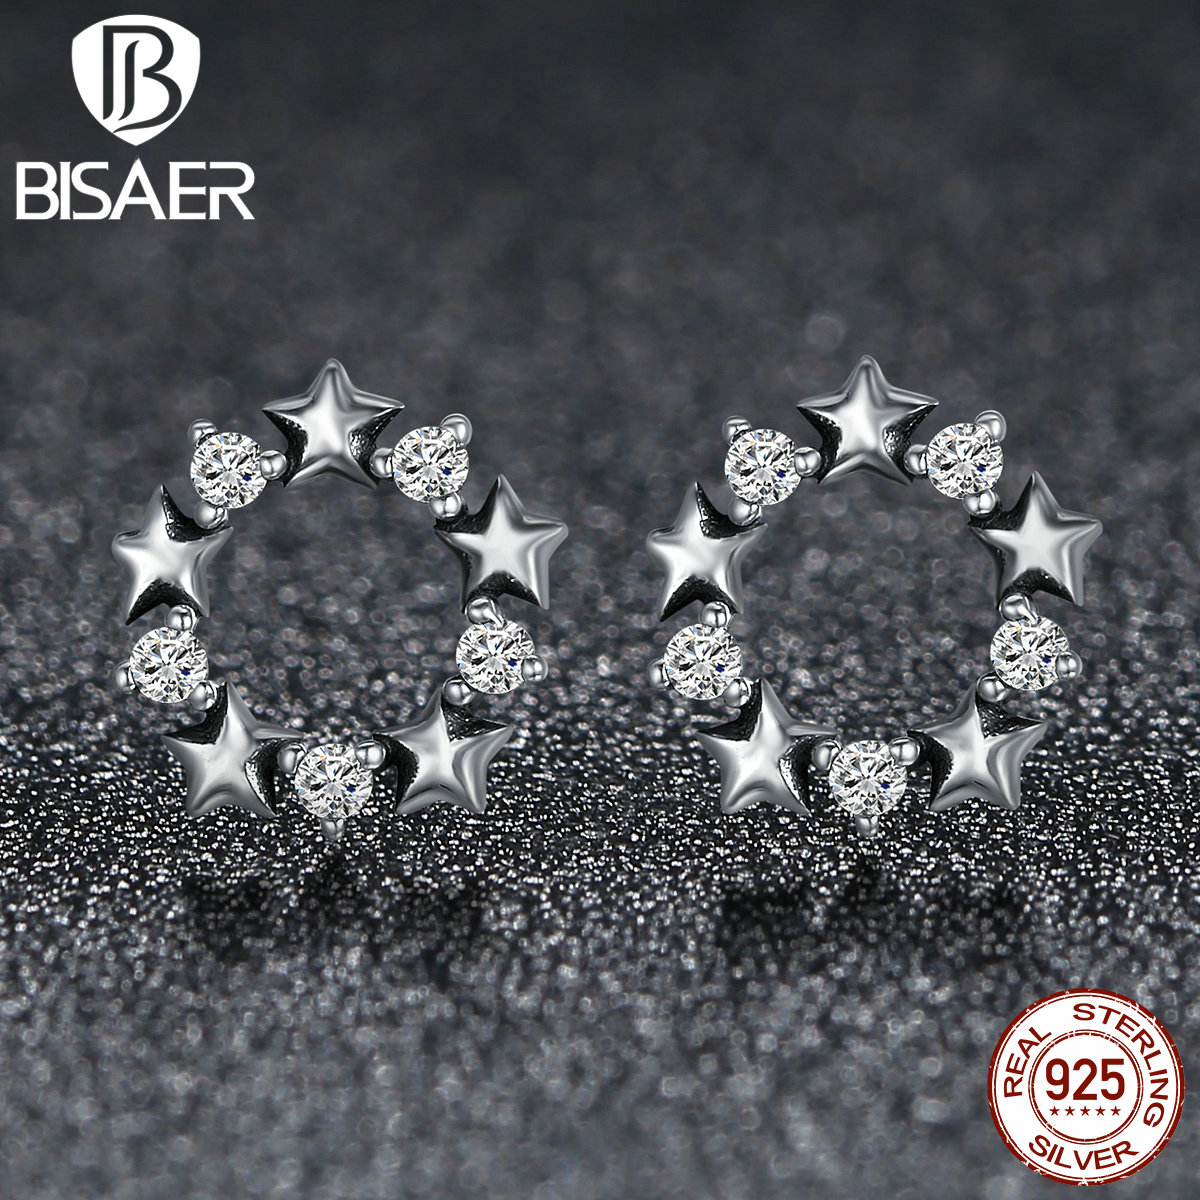 Authentic 925 Sterling Silver <font><b>Bright</b></font> <font><b>Starlight</b></font>, <font><b>STARS</b></font> Link Circle Stud Earrings for Women Wedding Sterling Silver Jewelry ECE185